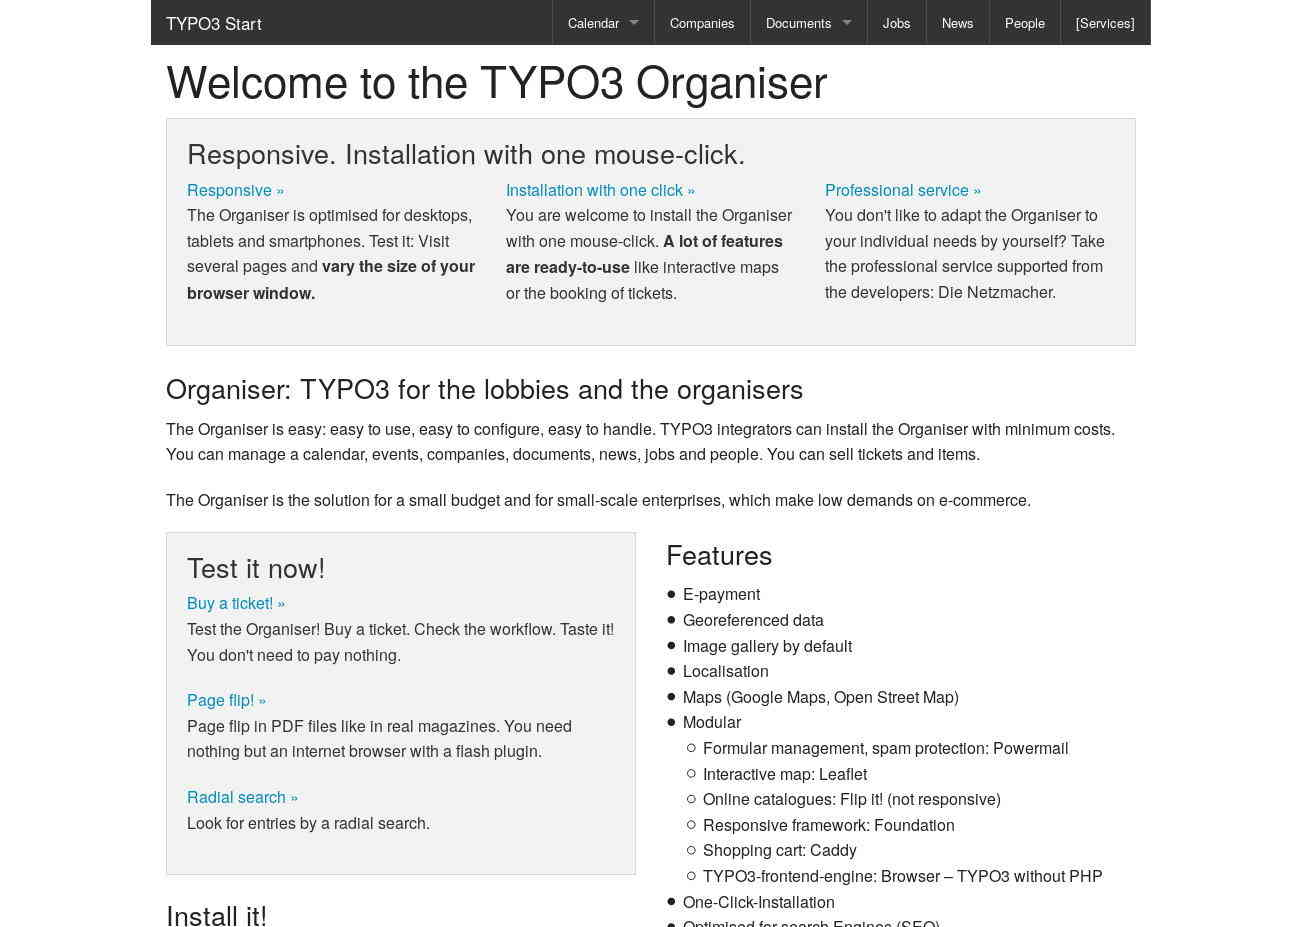 Start TYPO3 Responsive: without the +Customer extension